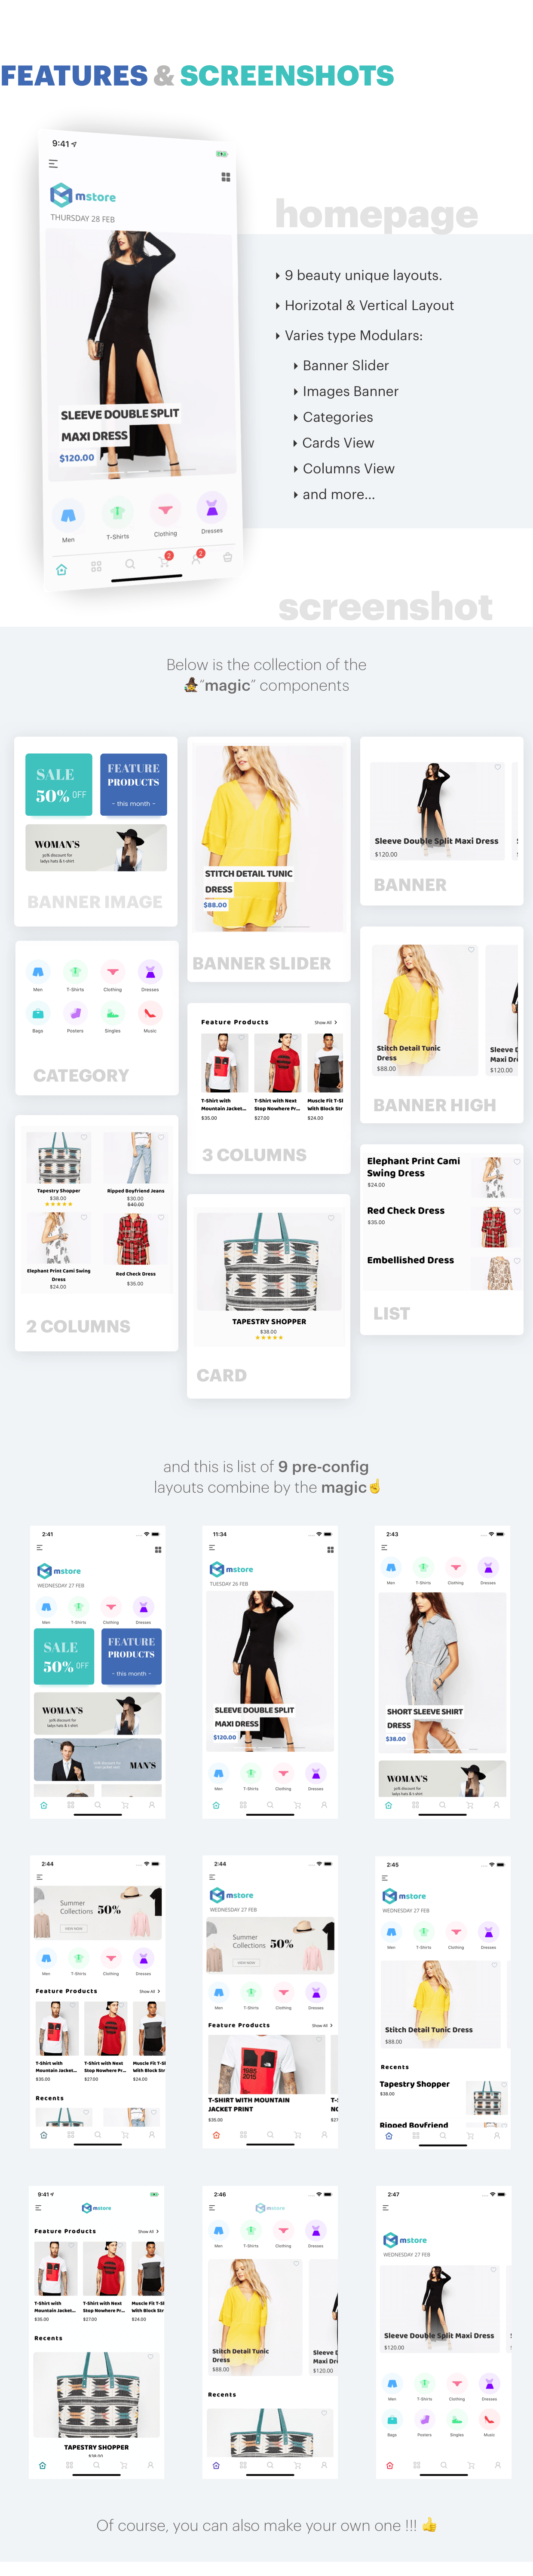 MStore Pro - Complete React Native template for e-commerce - 7